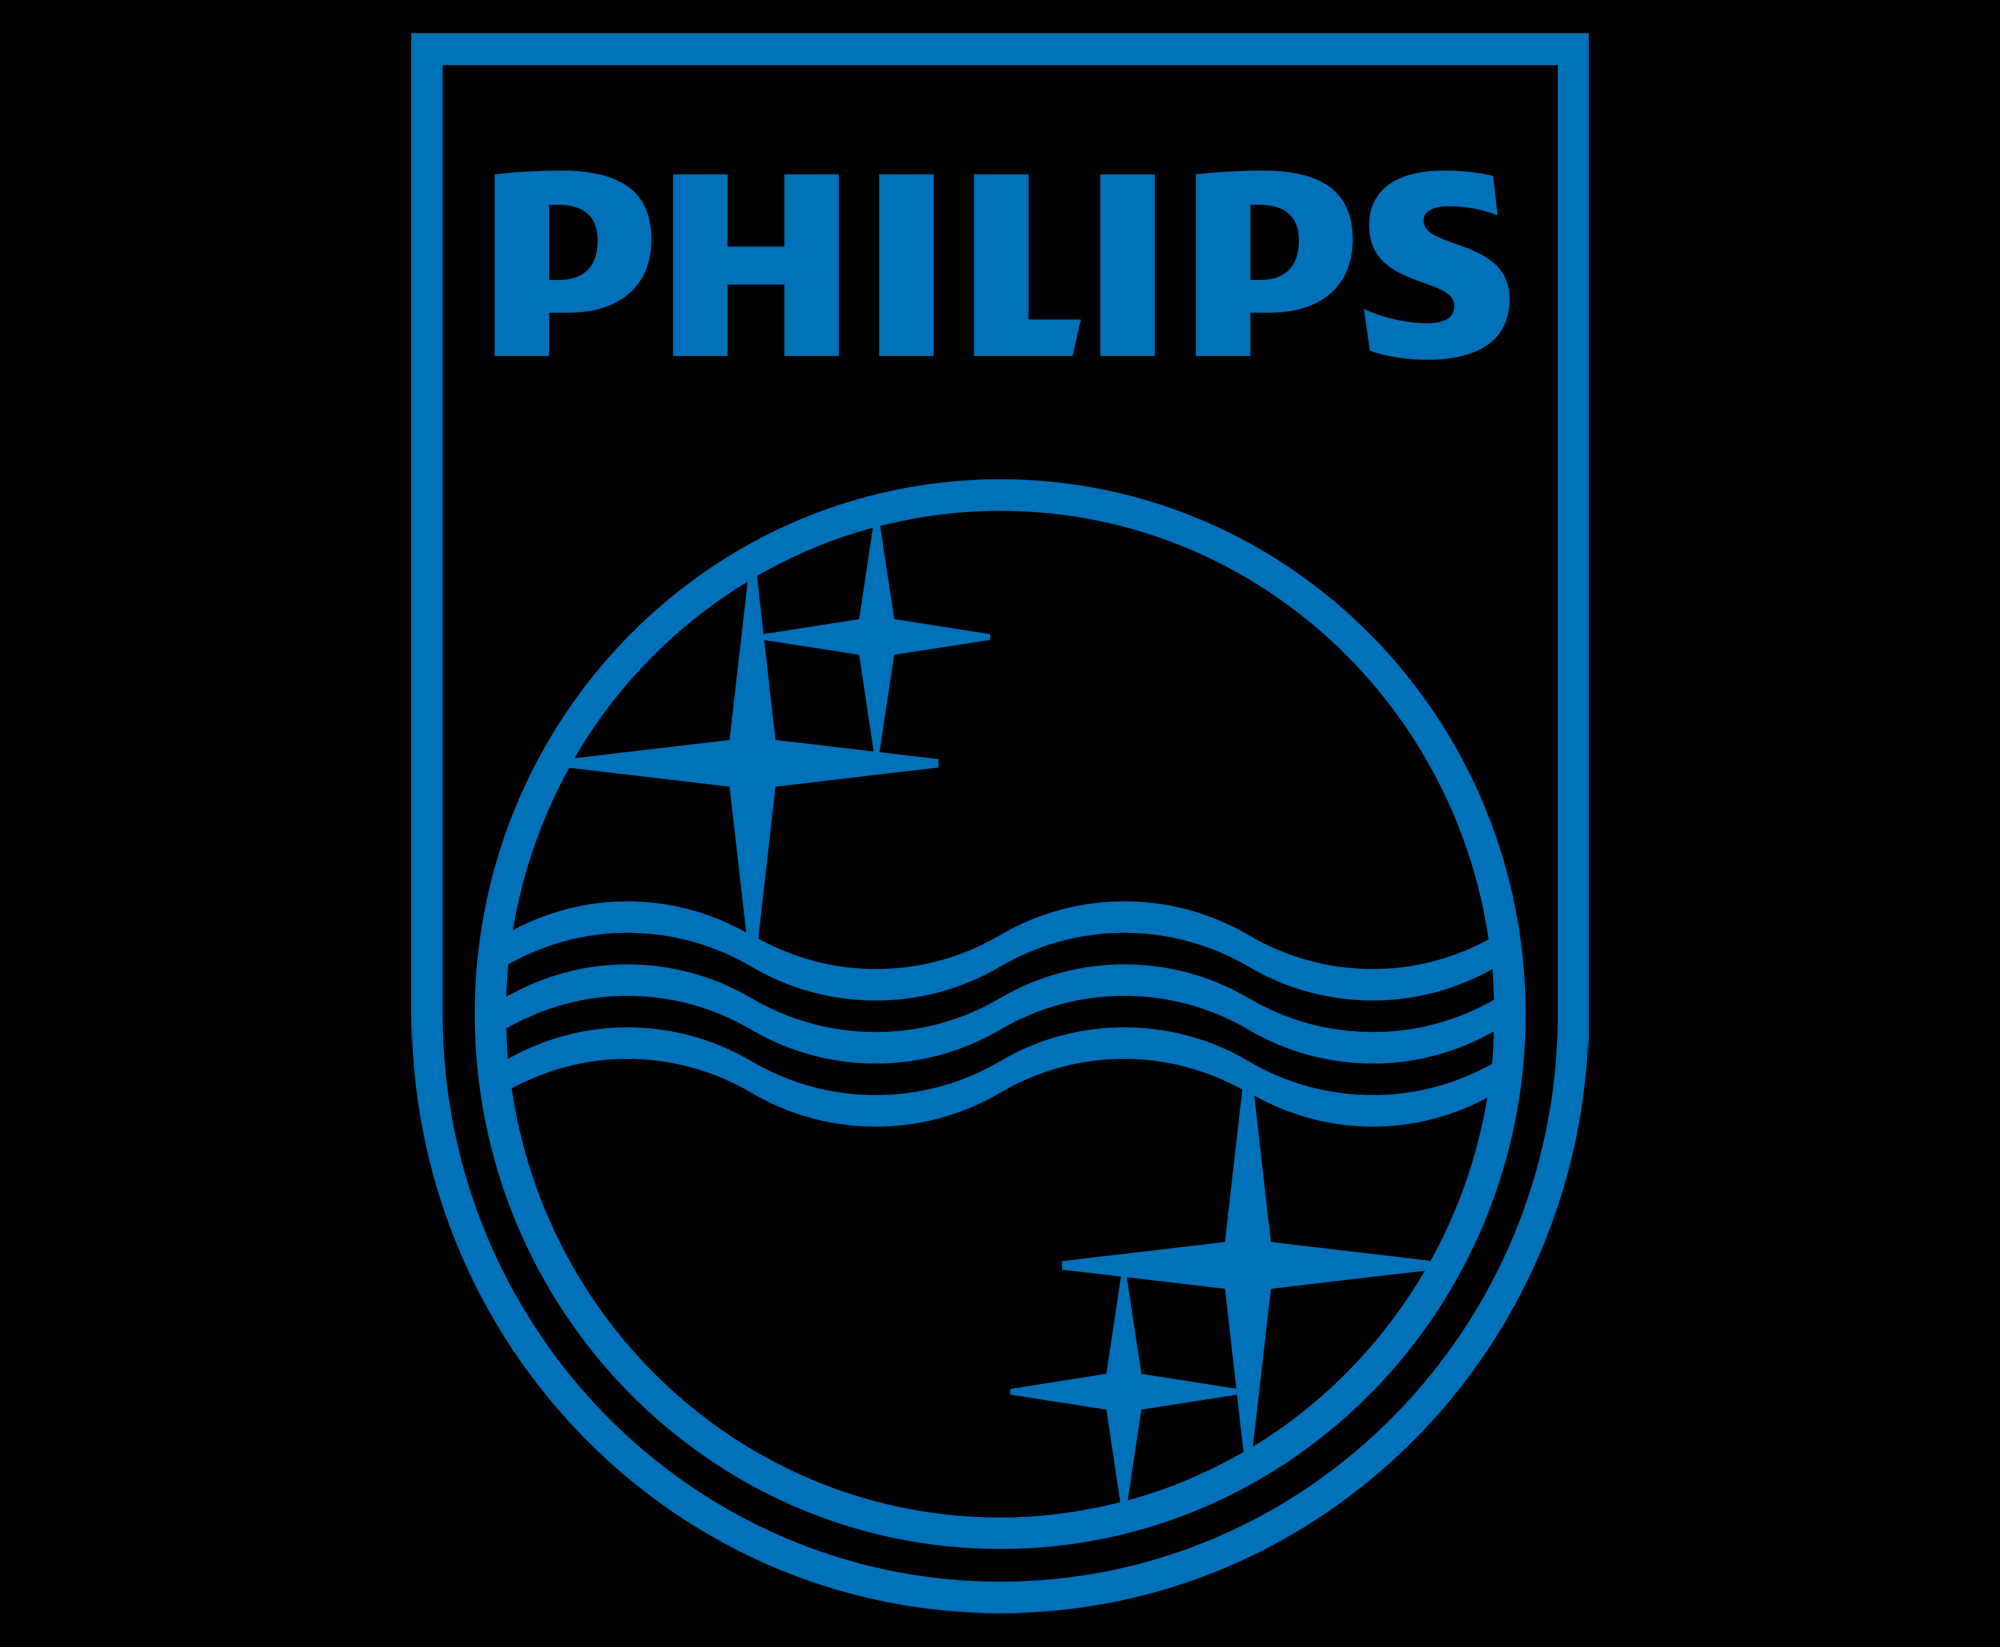 Philips Logo, Philips Symbol, Meaning, History and Evolution